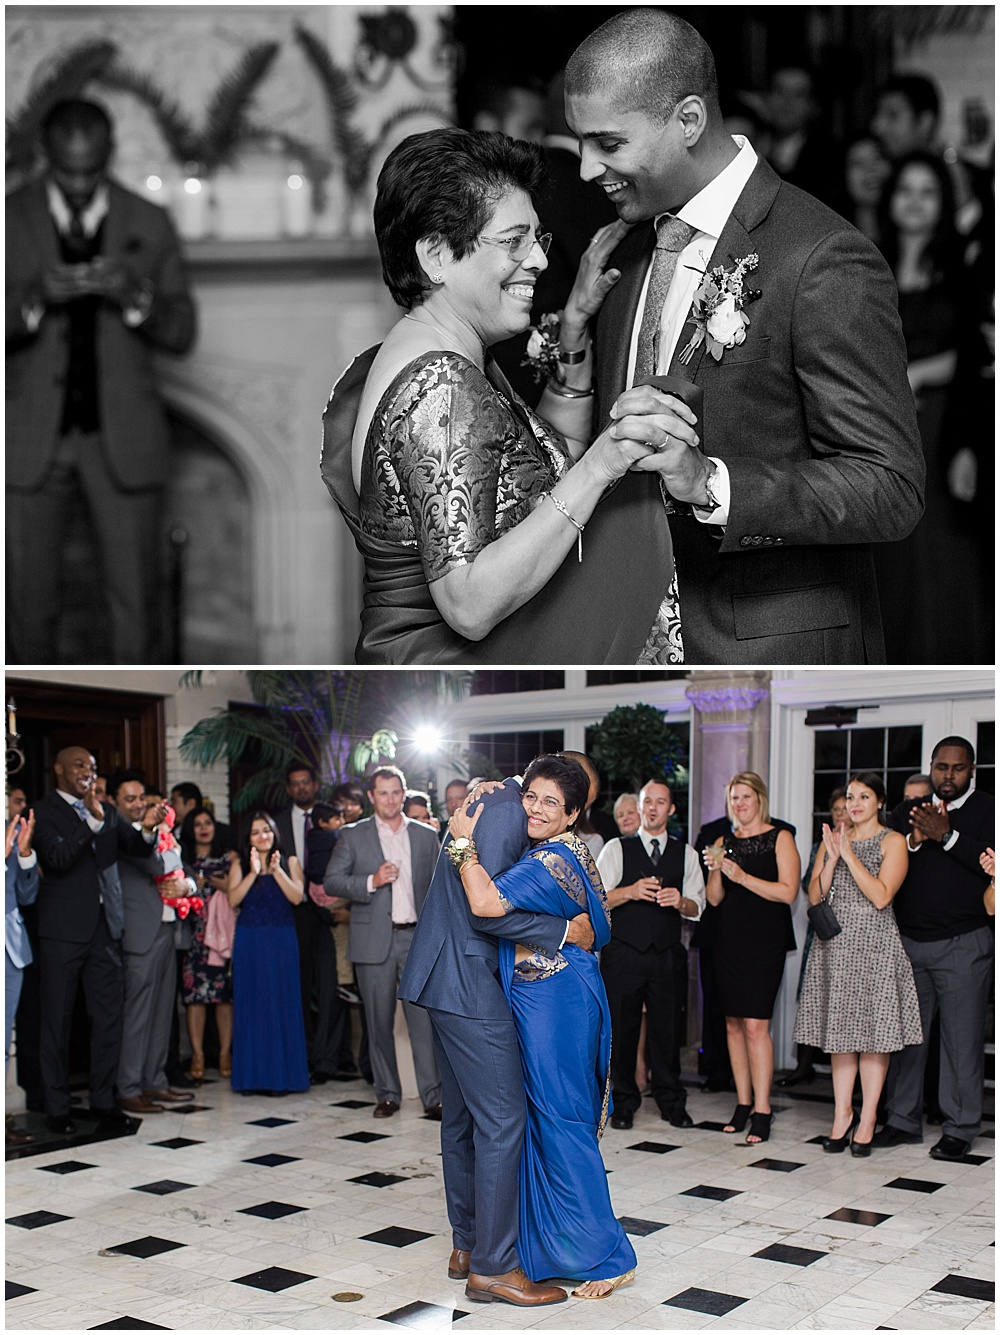 Mother son dance | Navy and Gold Wedding at Laurel Hall with Ivan & Louise Photography + Jessica Dum Wedding Coordination